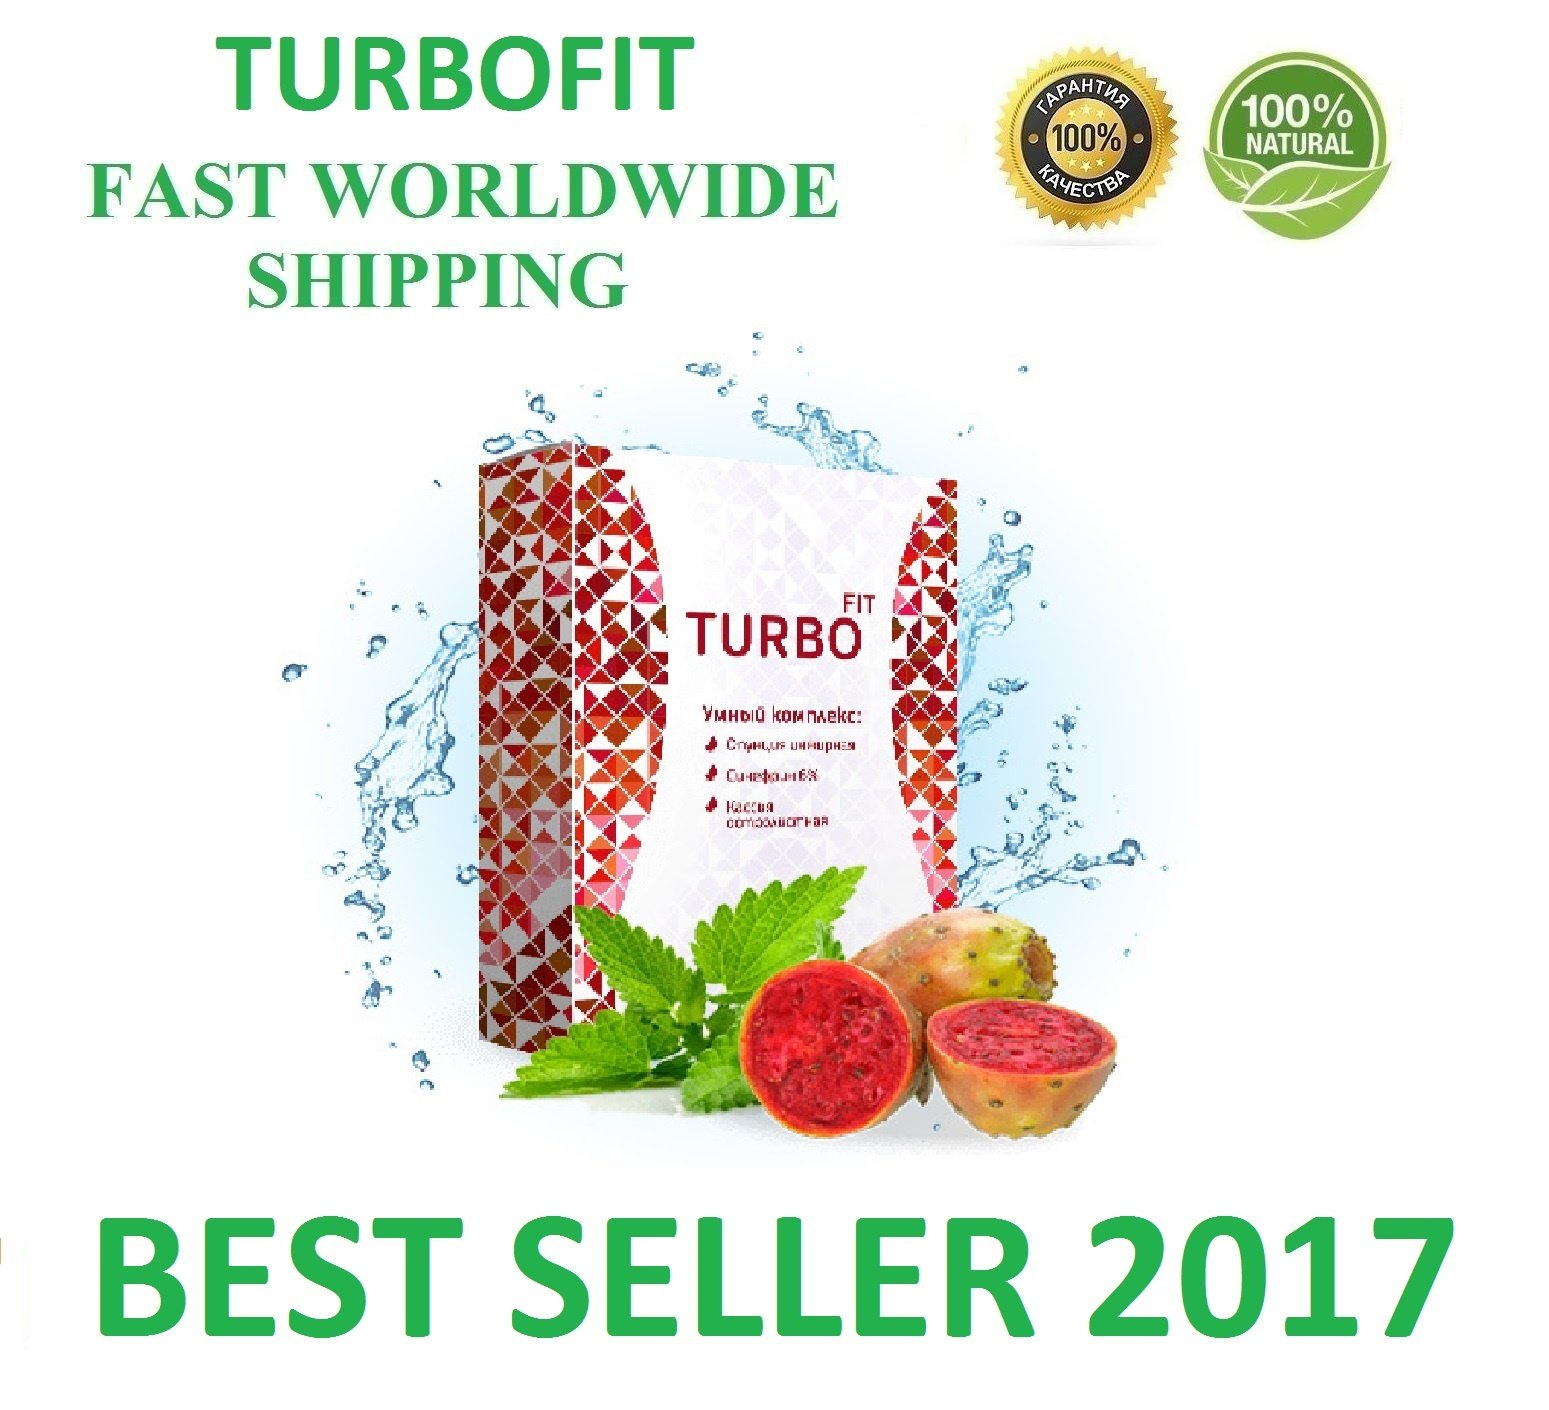 TURBOFIT - STRONGEST WEIGHT LOSS DIET SLIMMING DRINK GREATEST BELLY FAT BURNER (4)